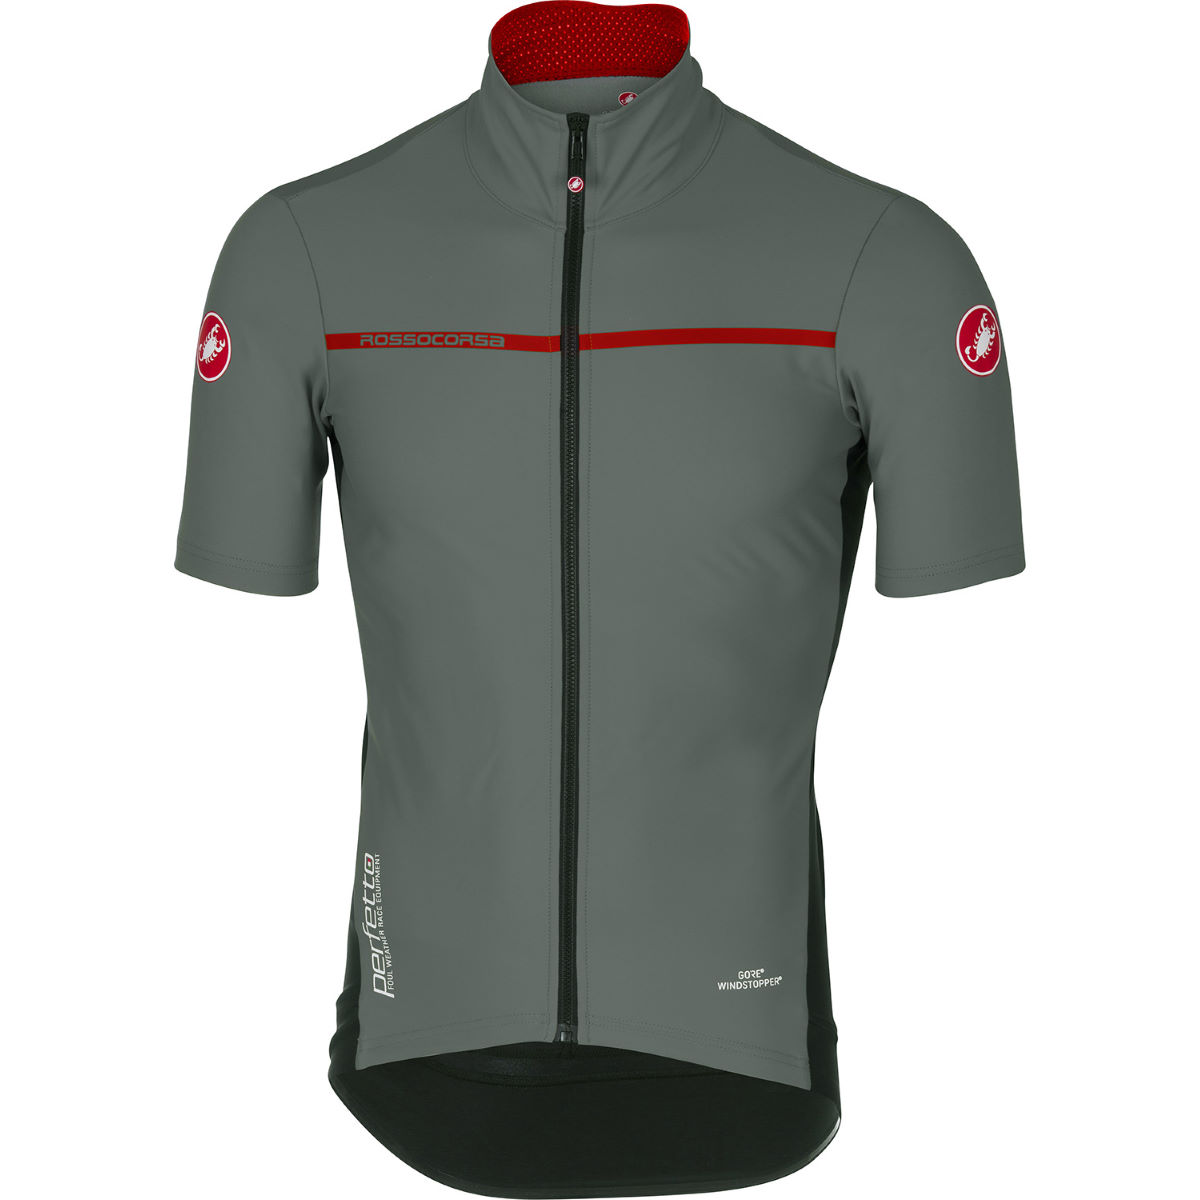 Maillot Castelli Perfetto Light 2 - M Forest Gray Maillots